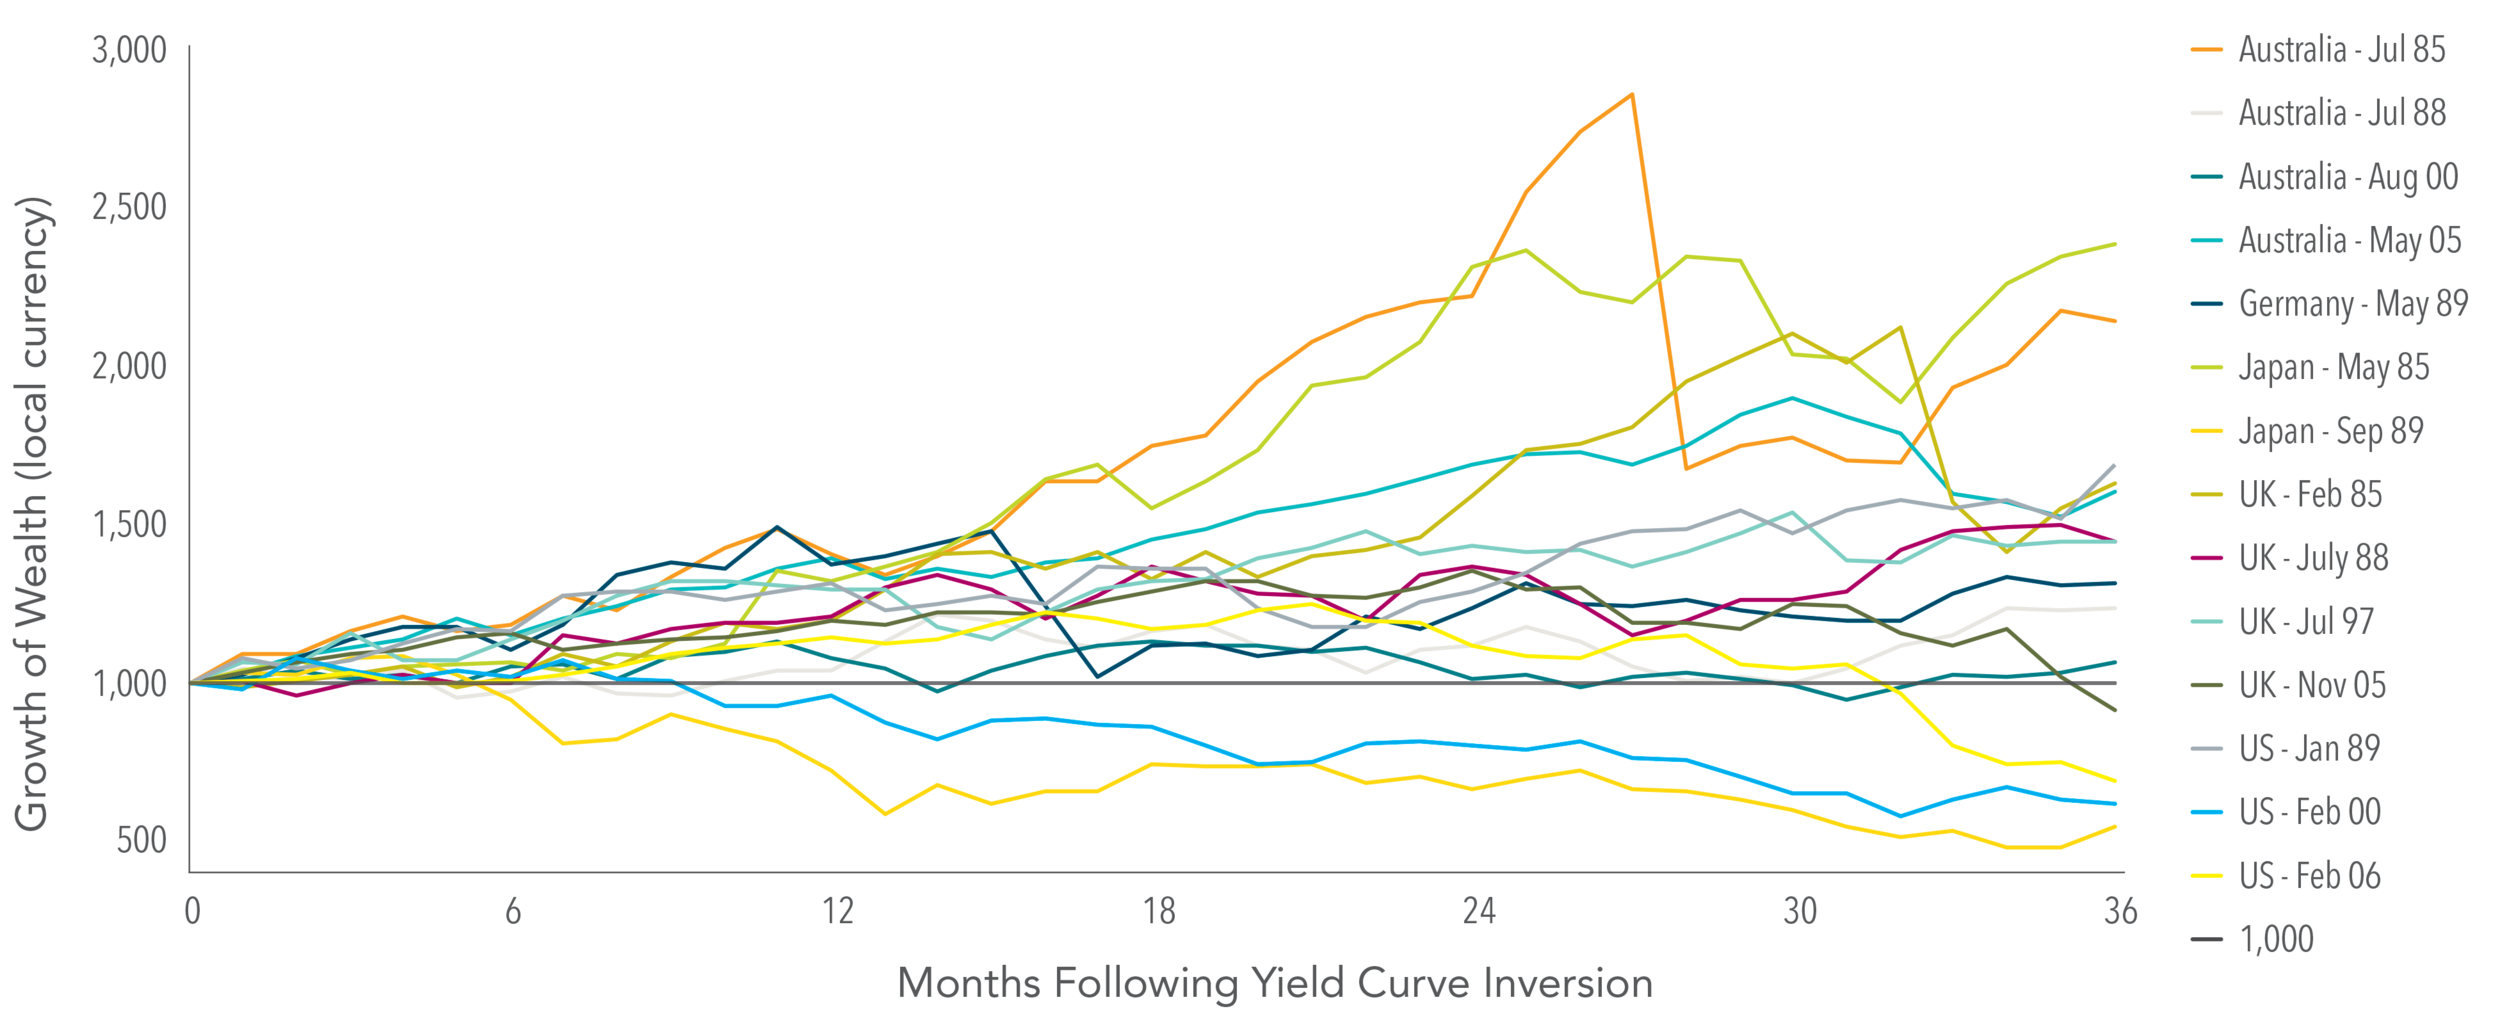 Exhibit 3.  Stock Market Performance in Selected Developed Countries Following a Yield Curve Inversion  Yield curve inversions based on 2-year and 10-year government bond yields for each country. Yields obtained from Reserve Bank of Australia, Bundesbank, Japanese Ministry of Finance, Bank of England, European Central Bank, and US Federal Reserve. Stock returns based on local currency MSCI indices. MSCI Australia Index (gross div., AUD), MSCI Germany Index (gross div., EUR), MSCI Japan Index (gross div., JPY), MSCI United Kingdom Index (gross div., GBP), MSCI USA Index (gross div., USD.) These countries were selected to represent the world's major developed country currencies. Indices are not available for direct investment. Their performance does not reflect the expenses associated with the management of an actual portfolio. MSCI data © MSCI 2018, all rights reserved. Past performance is no guarantee of future results.